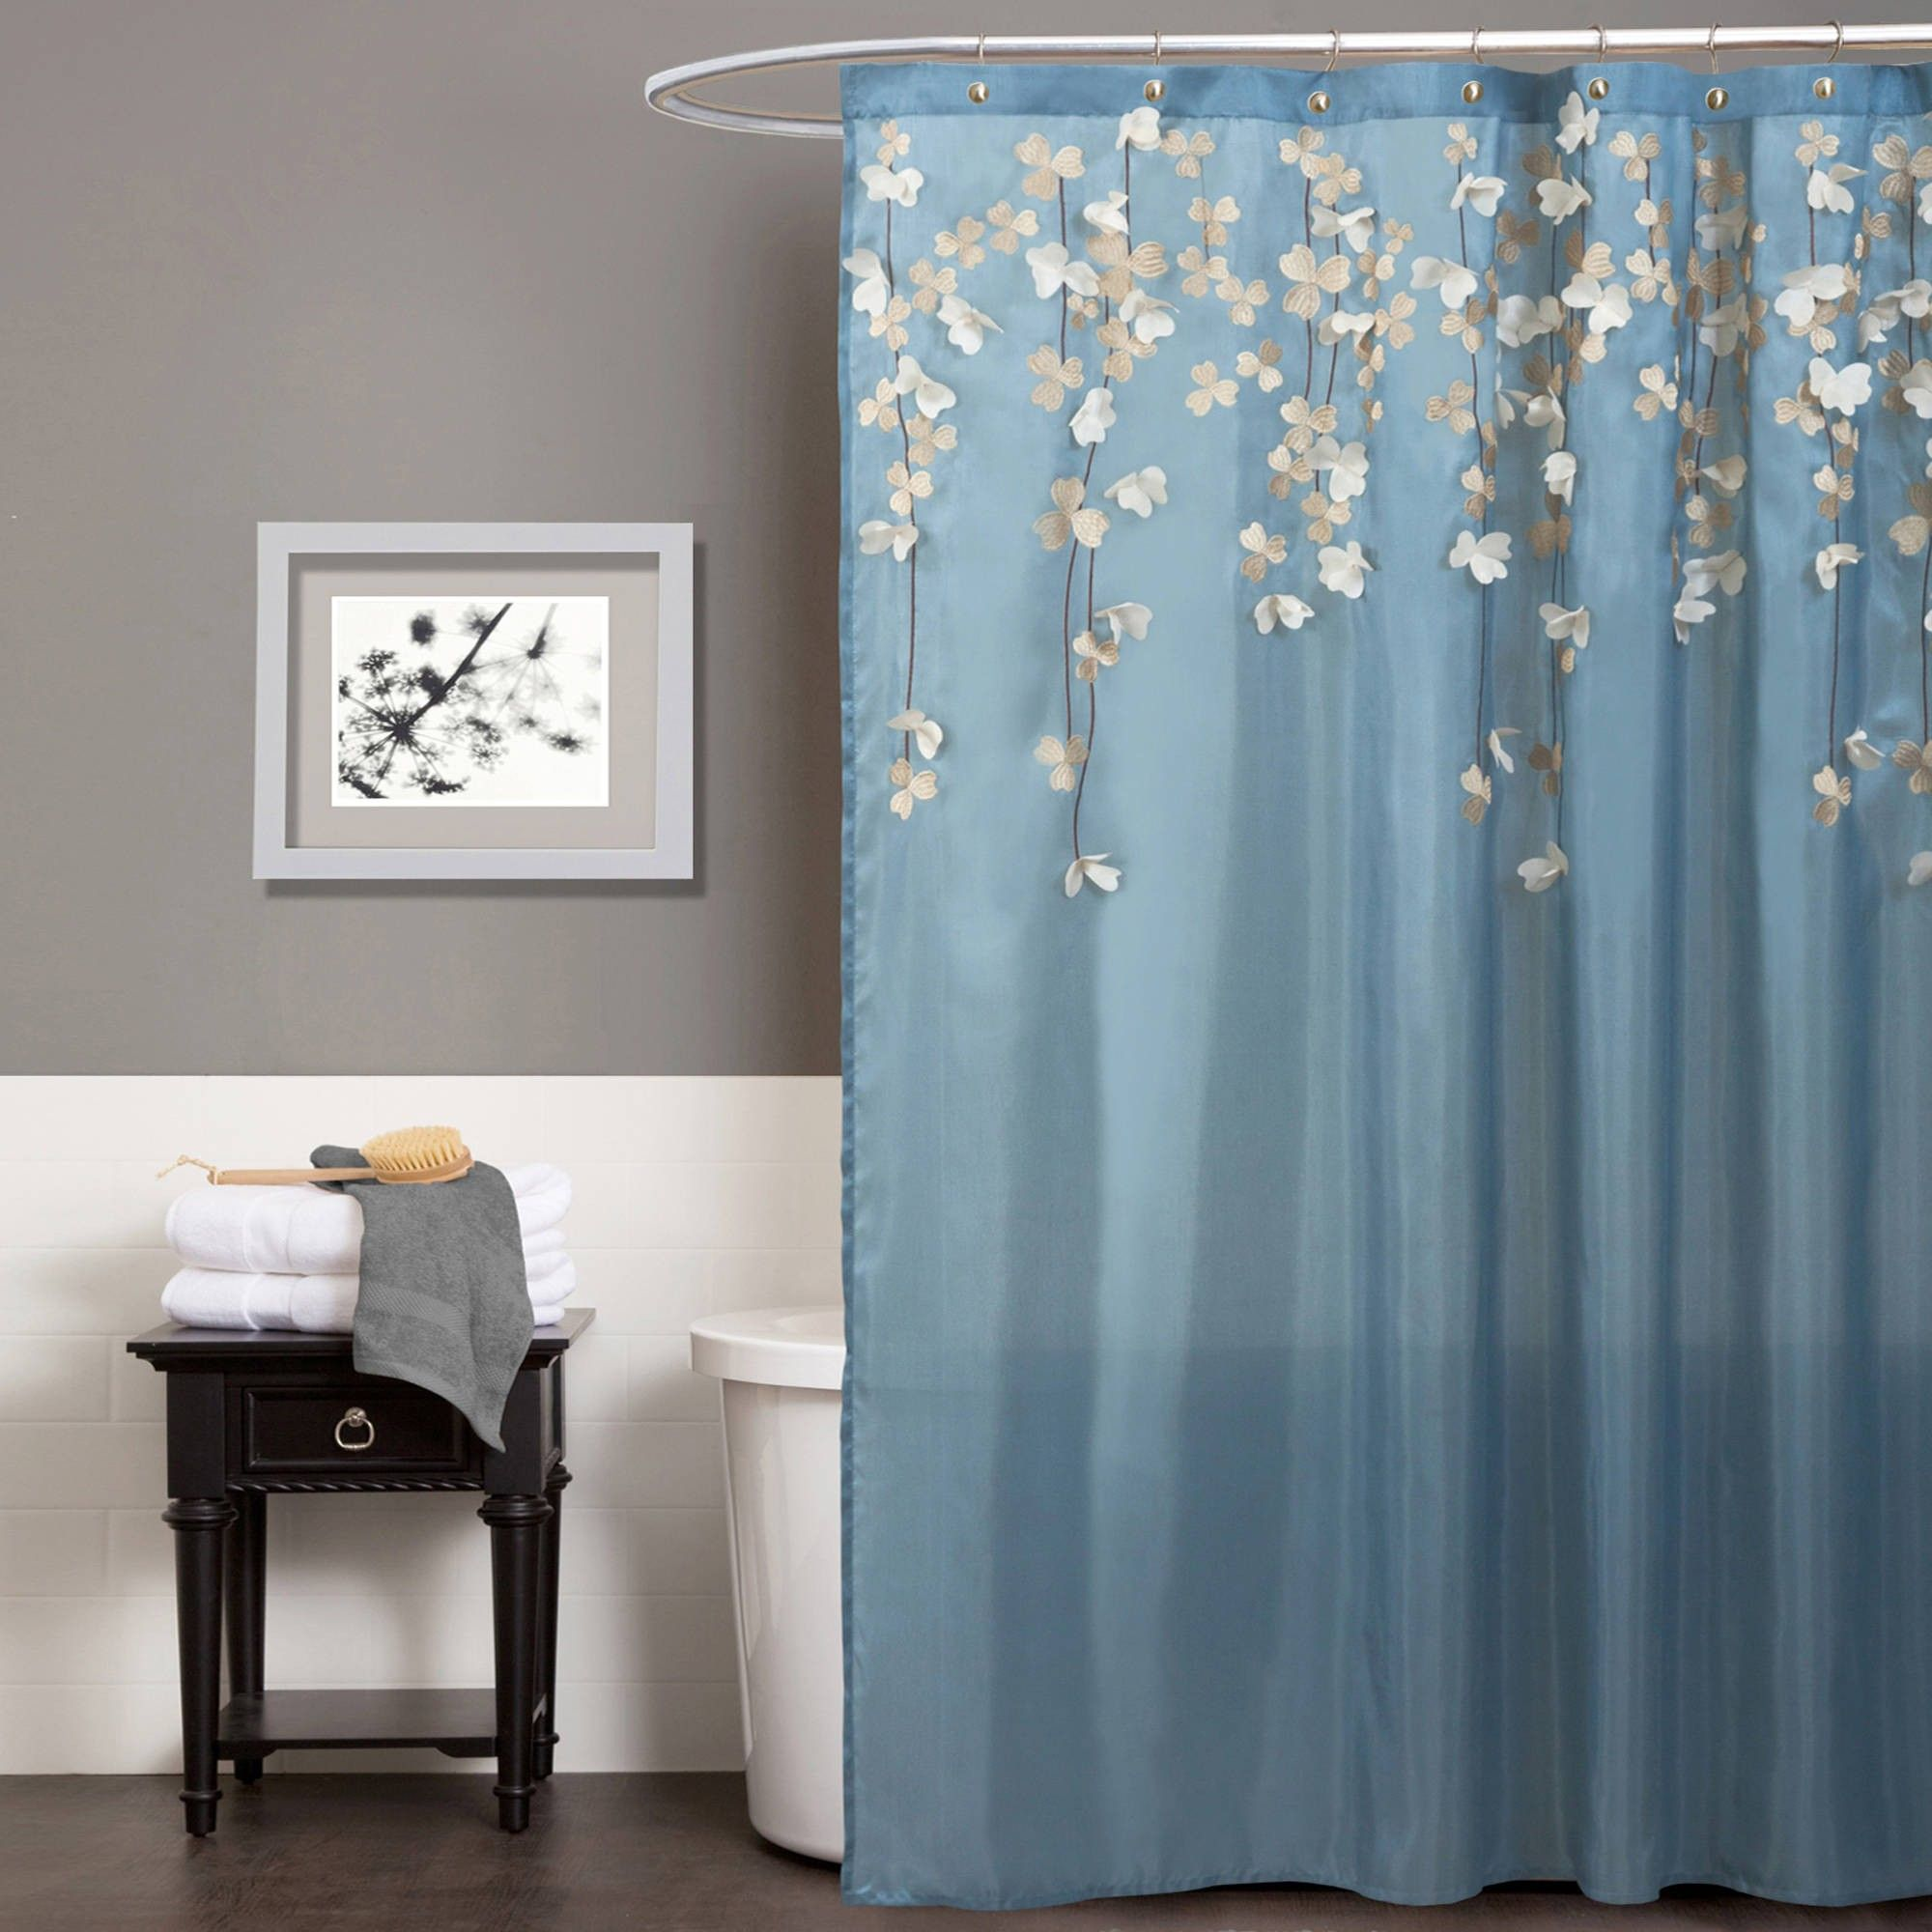 Awesome Stall Size Shower Curtains Illustration - Bathtub Ideas ...